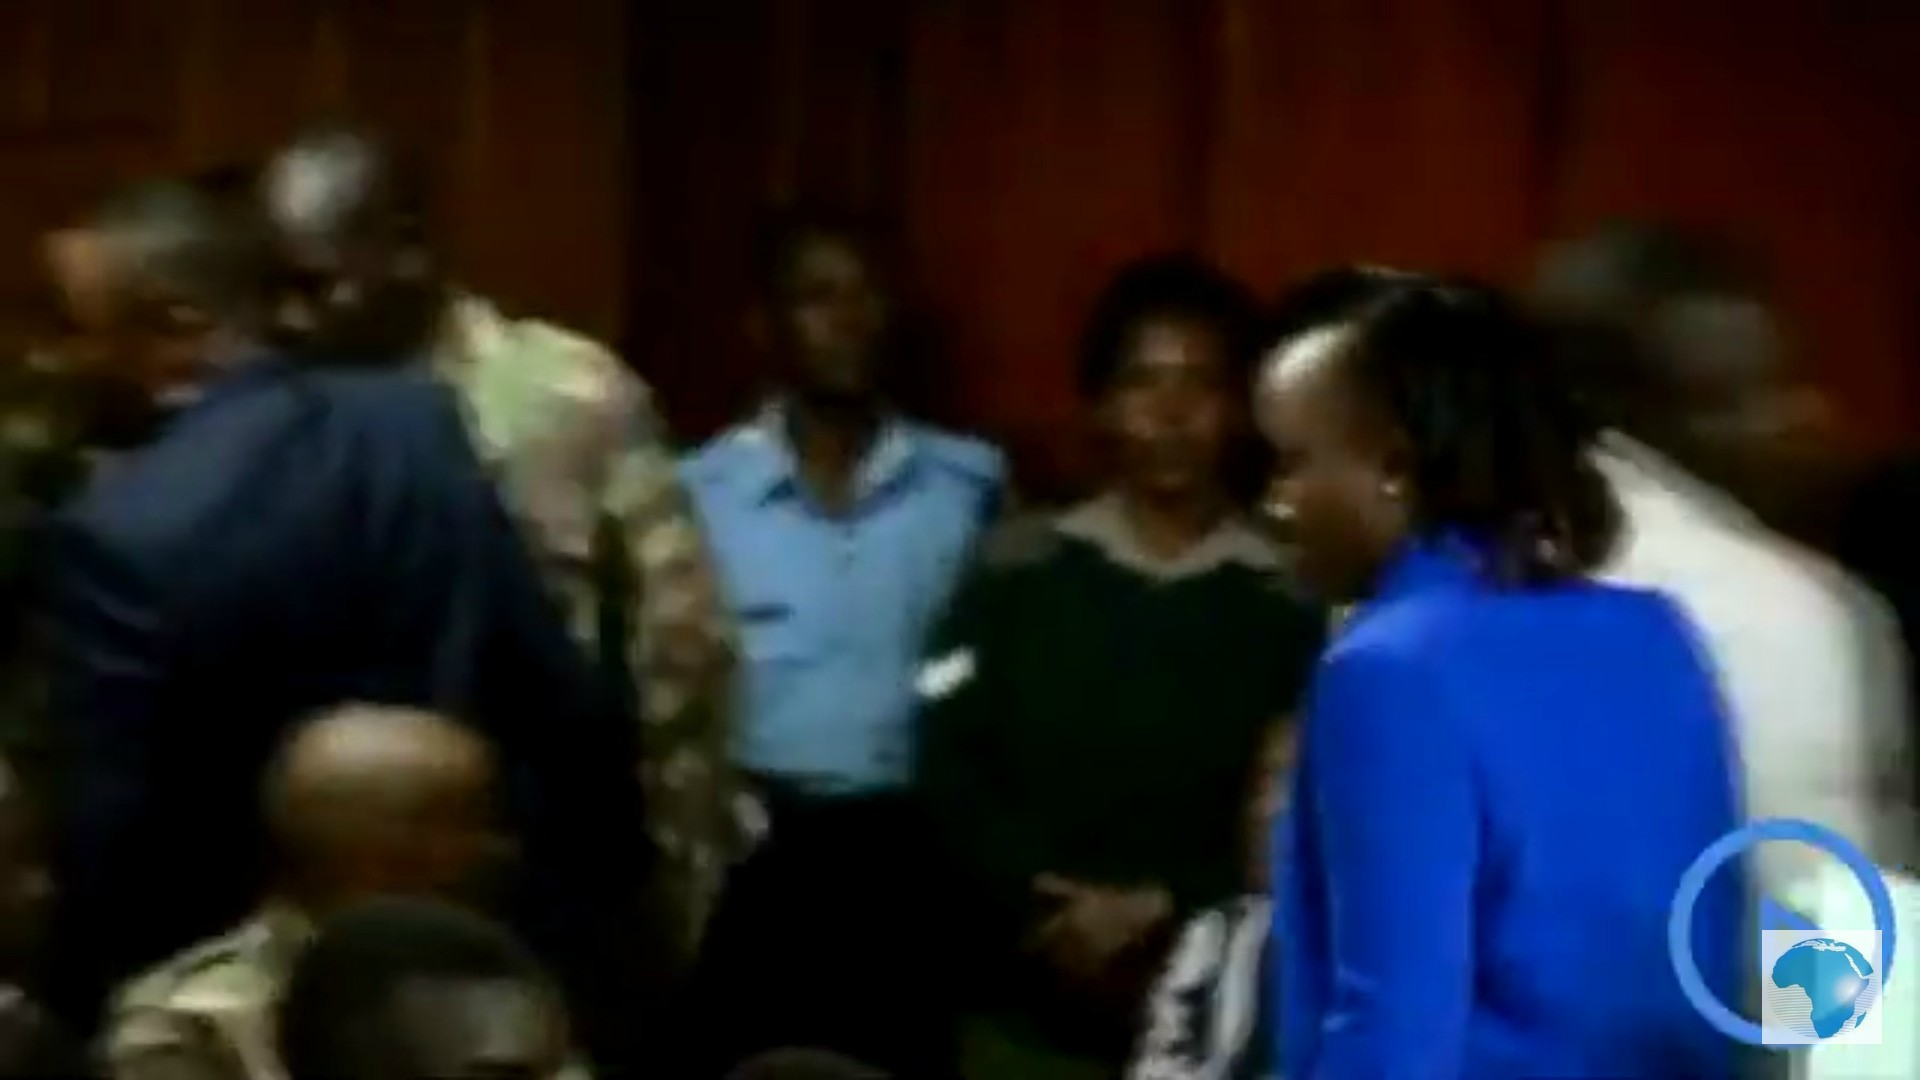 Maribe and Jowie in court 3 - Why did Jacque Maribe and Jowie Irungu wear blue yesterday?